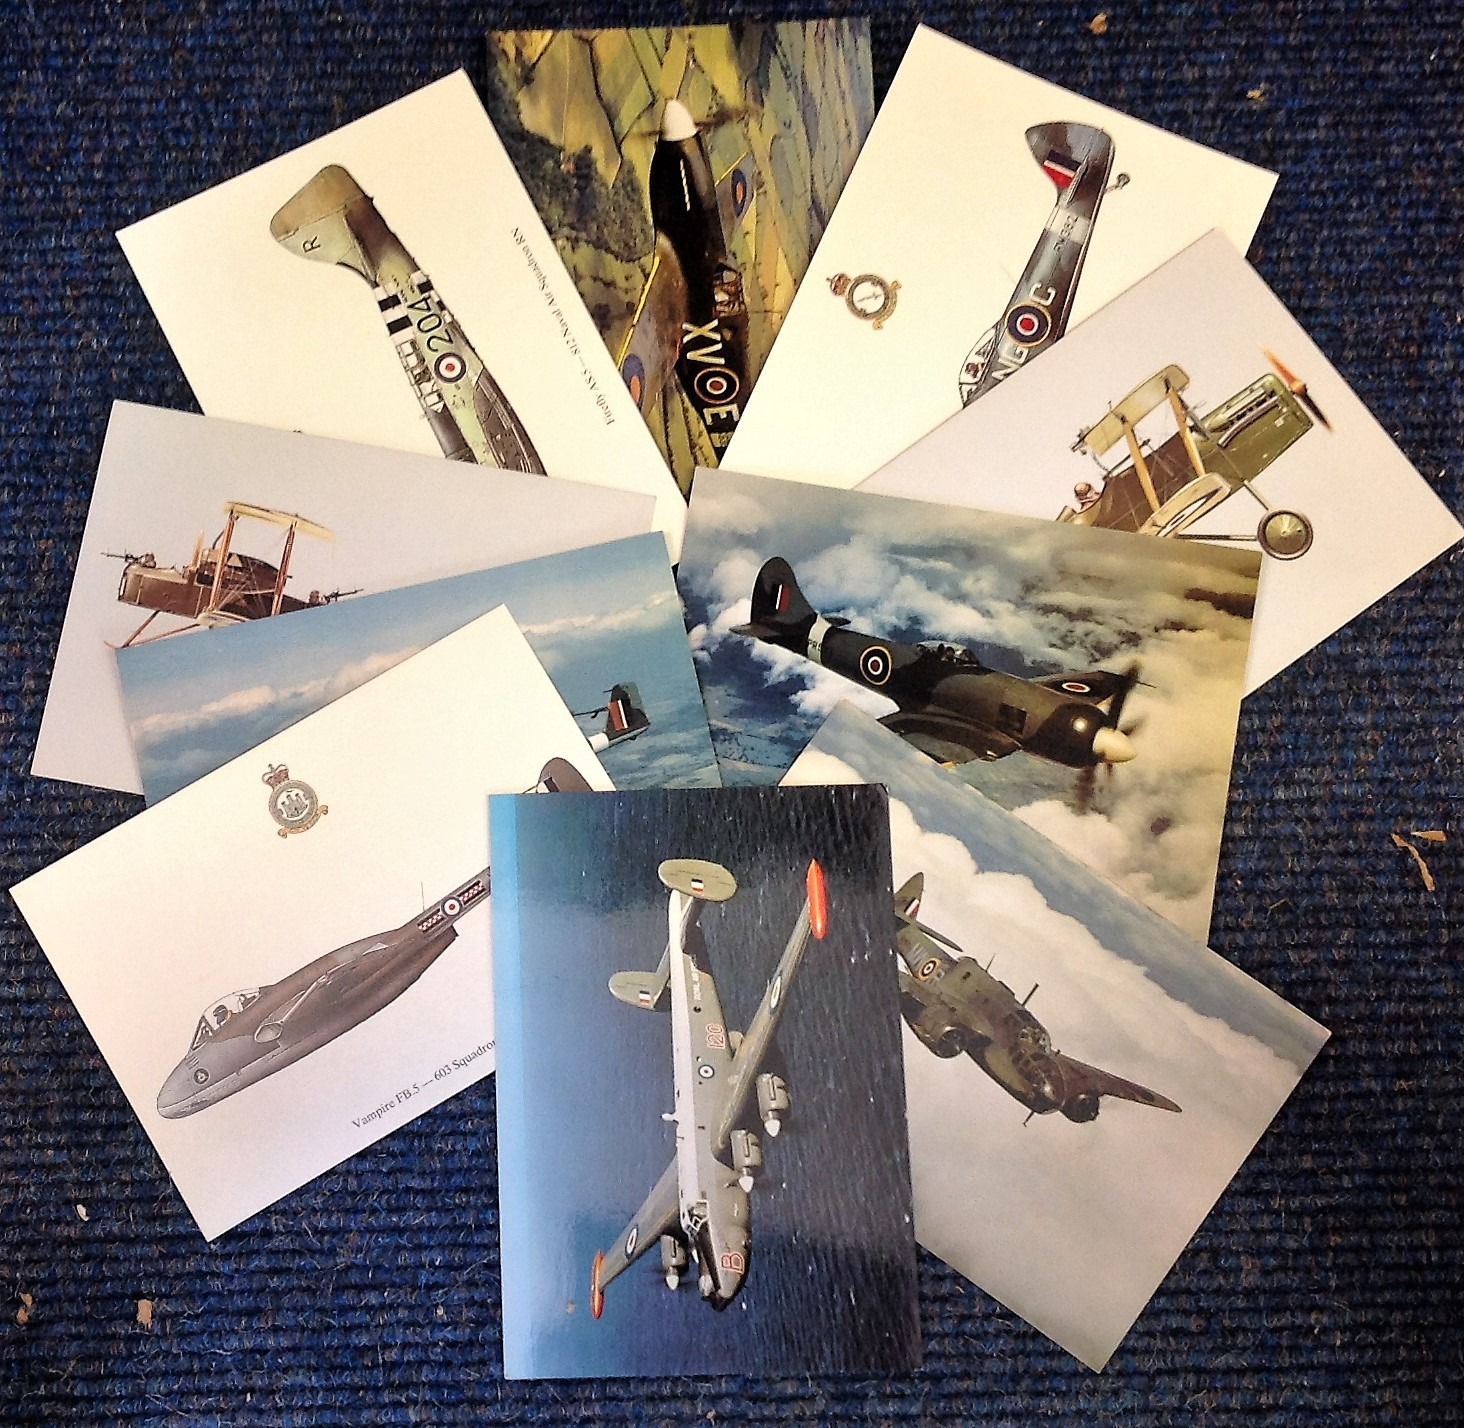 Lot 10 - Aviation postcard collection includes 10 squadron print cards such as North American Mustang I No